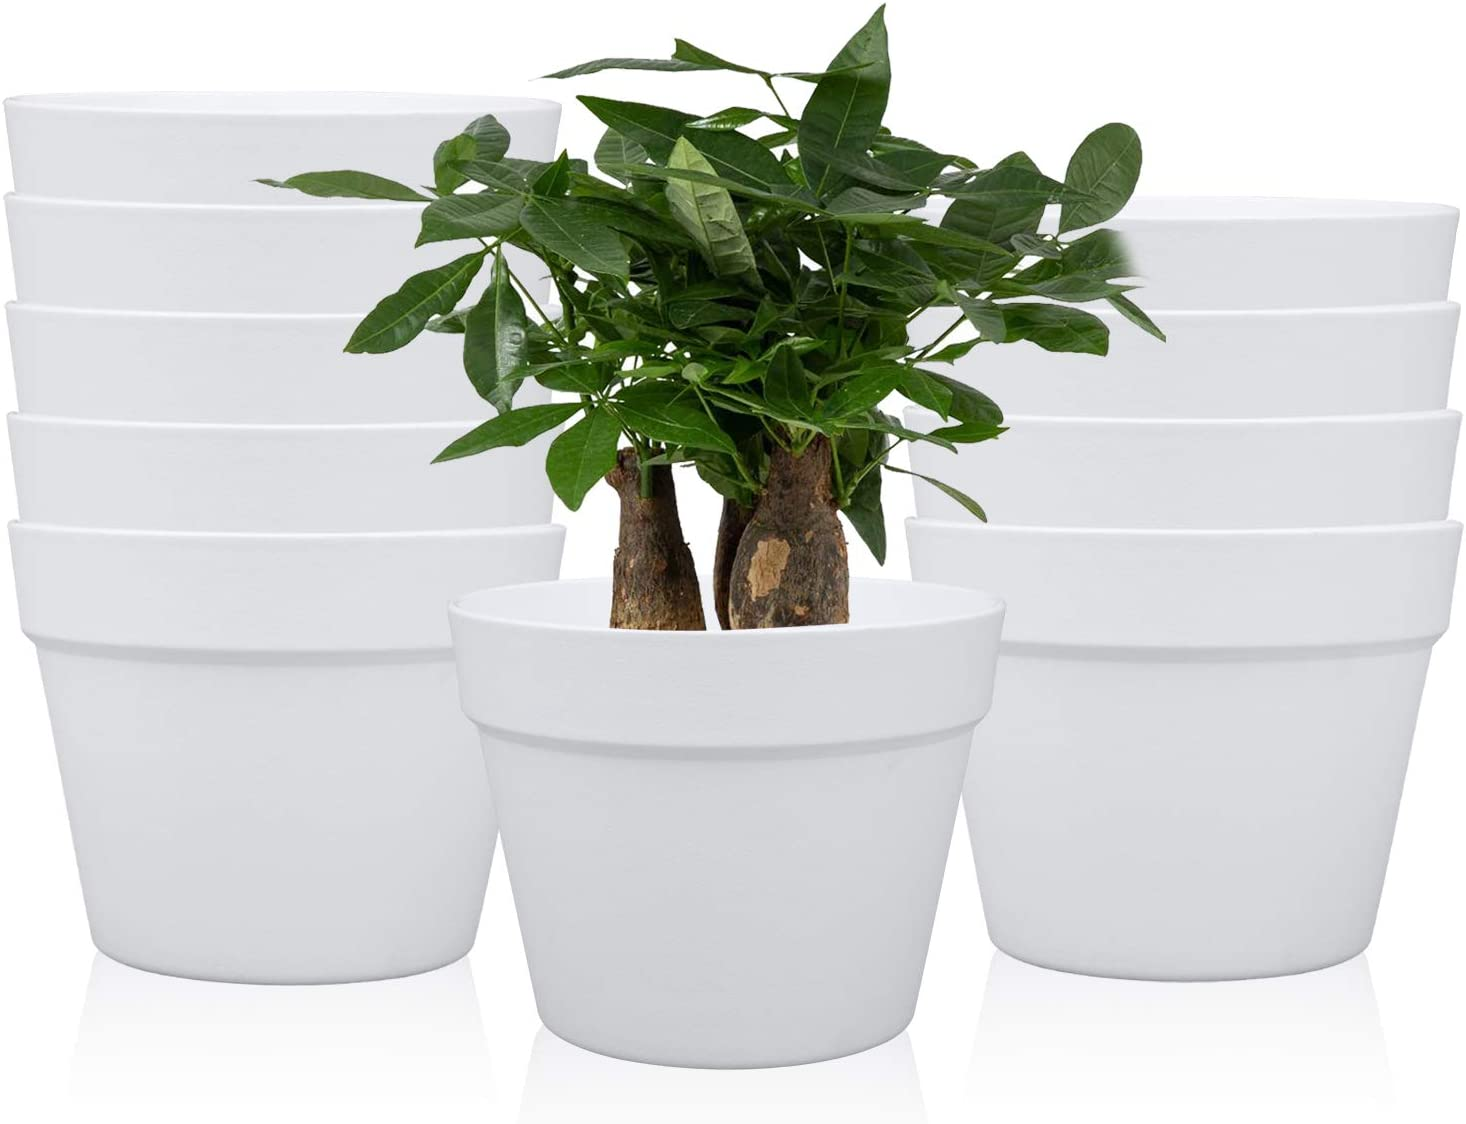 7 Inches / 10 pcs Plastic Plant Pots, Gardening Containers, Planters, Perfect for Indoor and Outdoor Decoration/Garden/Kitchen/Flower/Succulents (White)